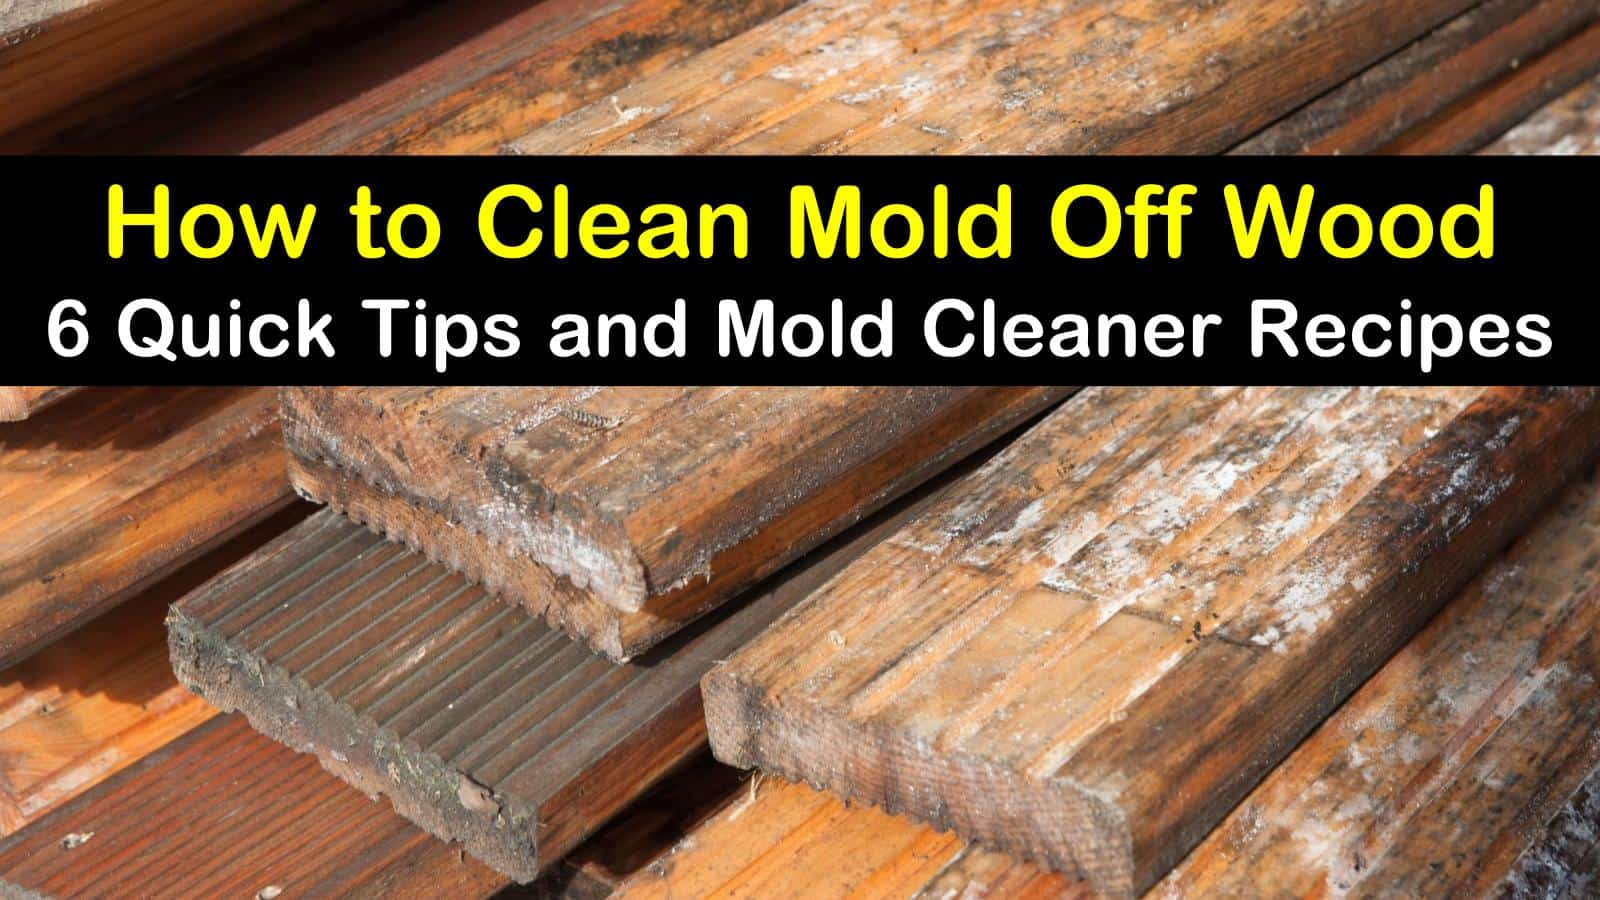 6 Quick Ways To Clean Mold Off Wood